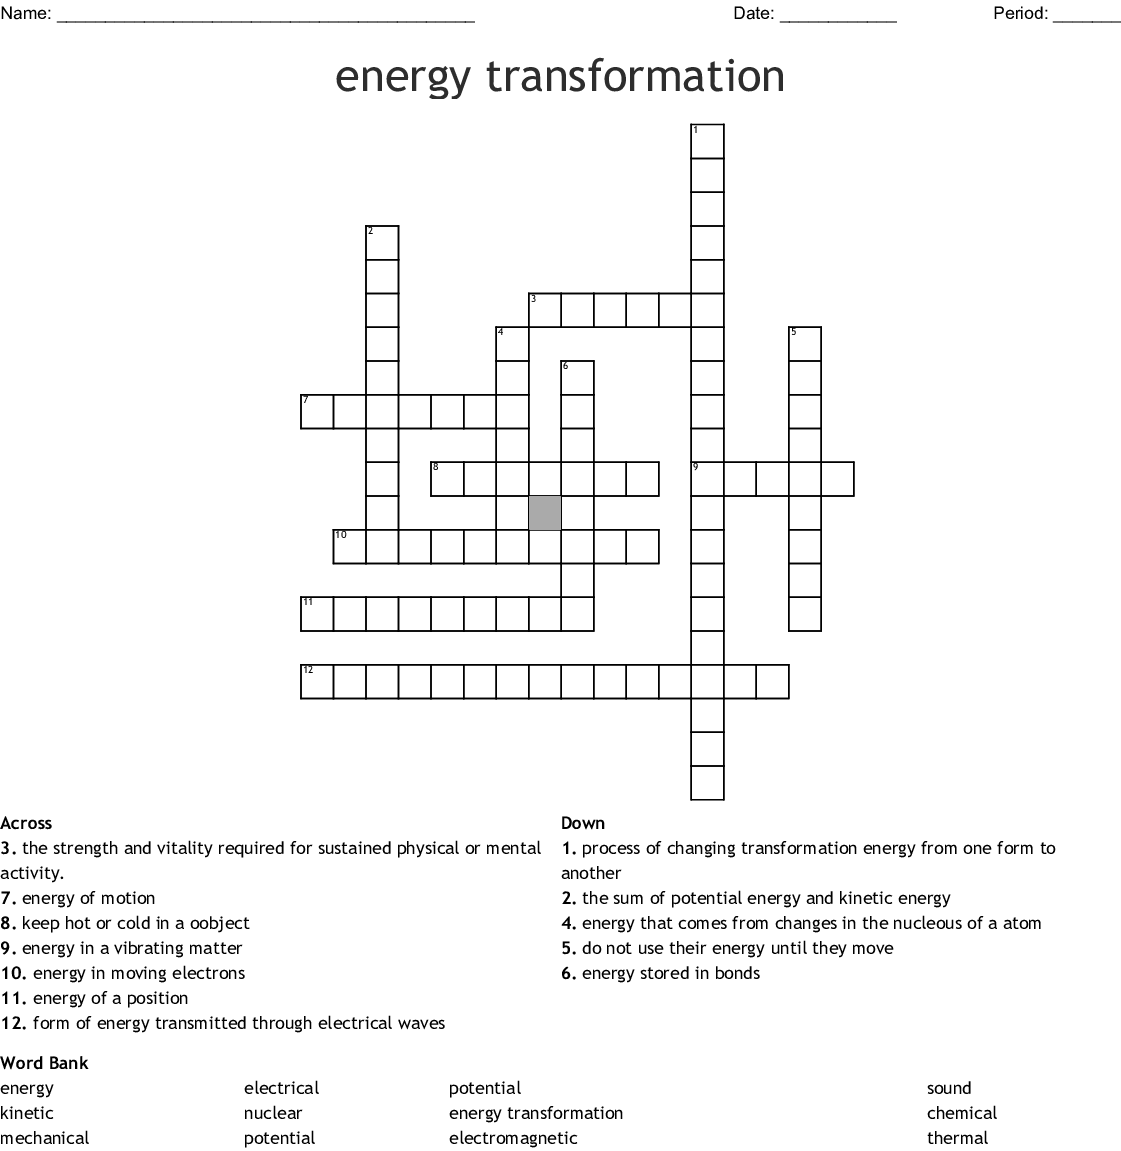 Energy Transformation Worksheet Answers Key